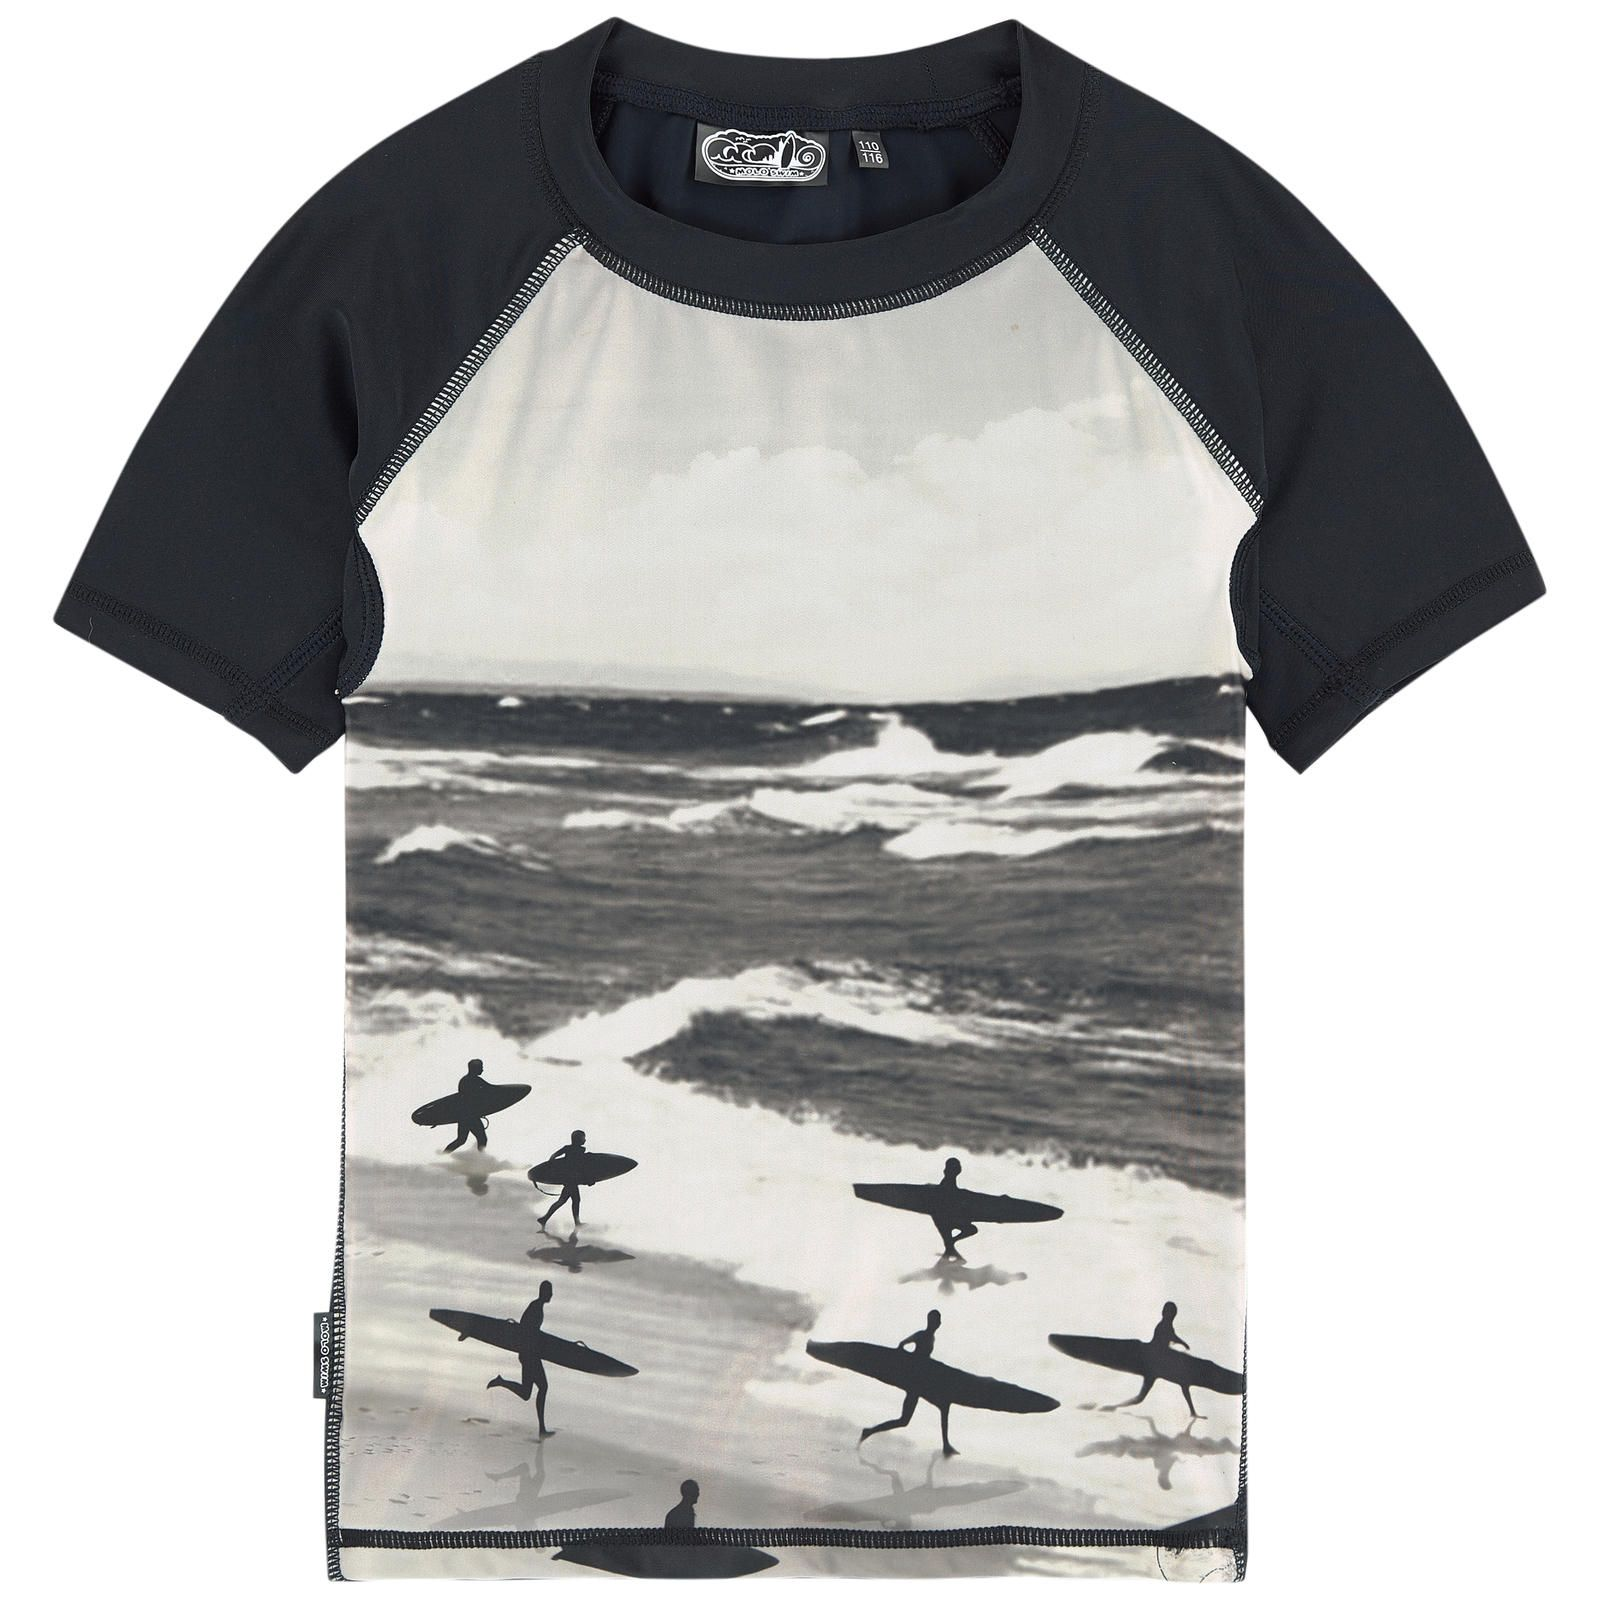 34563591ae ... UV40+ protection Fitted cut Crew neck 3/4 raglan sleeves Front print  Small logo patch on the heels - $ 39. UV sun protection beach T-shirt  Neptune ...